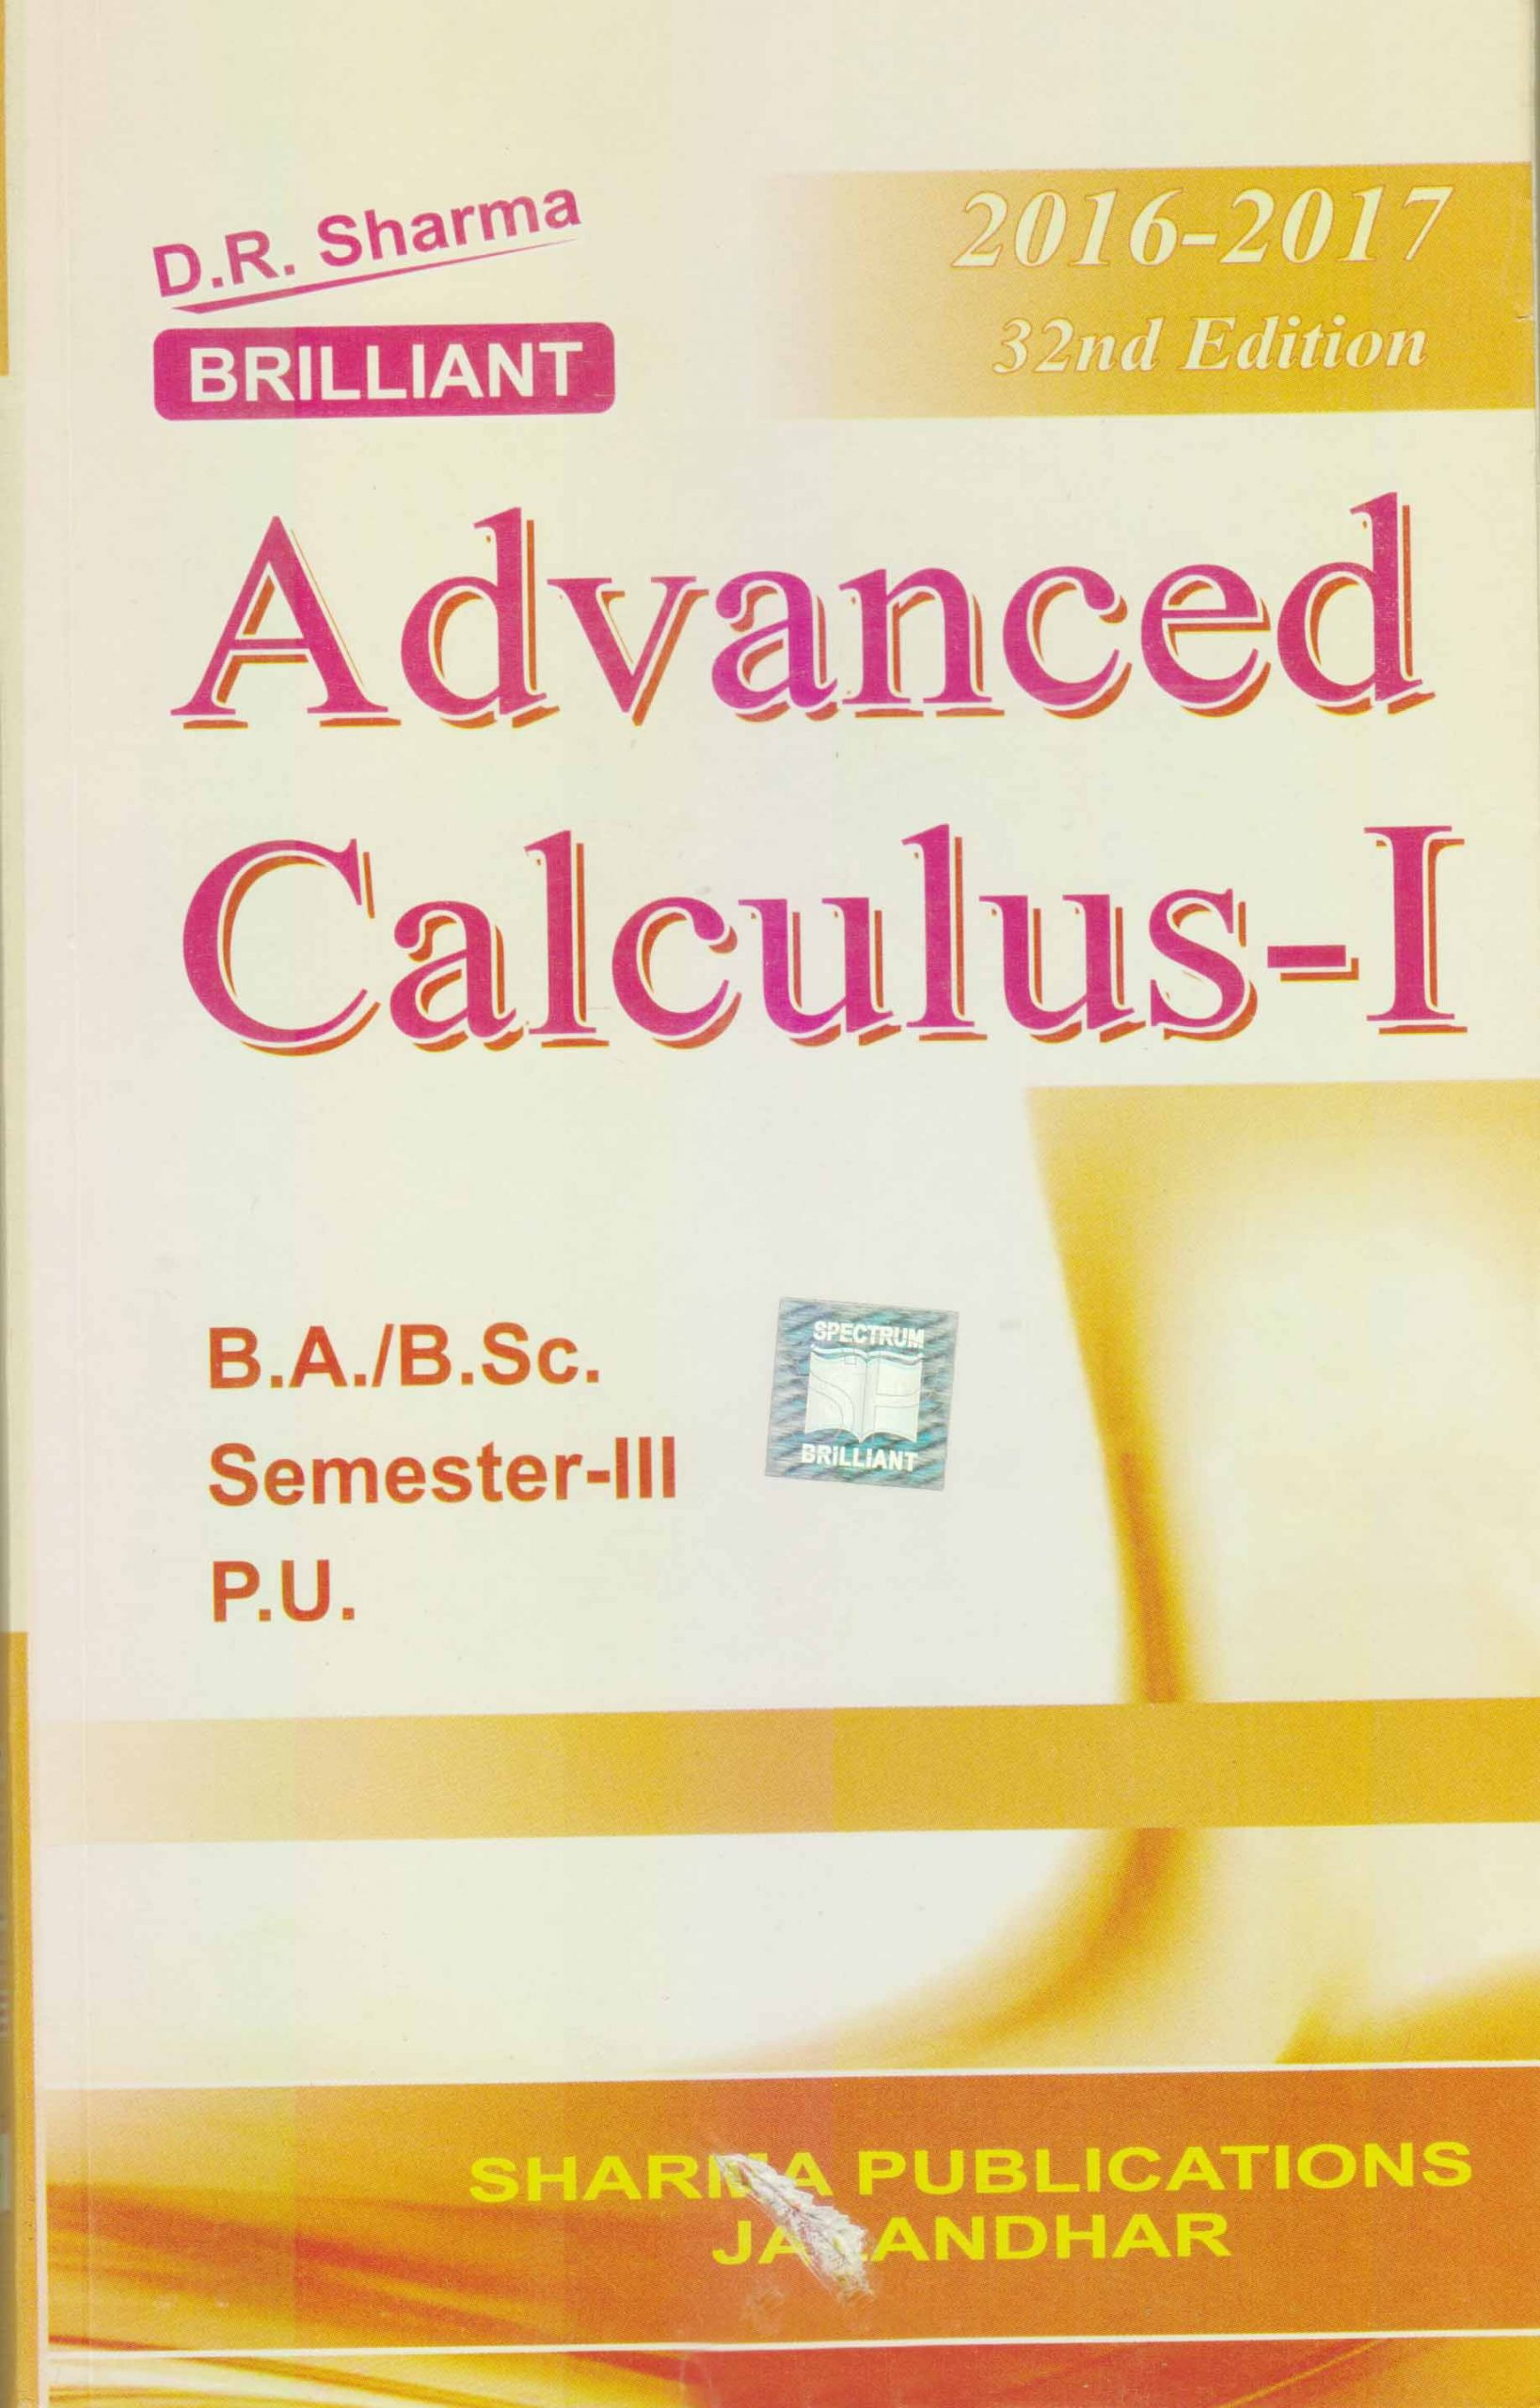 Advanced Calculus -1 for B.A. / B.Sc., Sem. 3 (P.U.) by D.R. Sharma